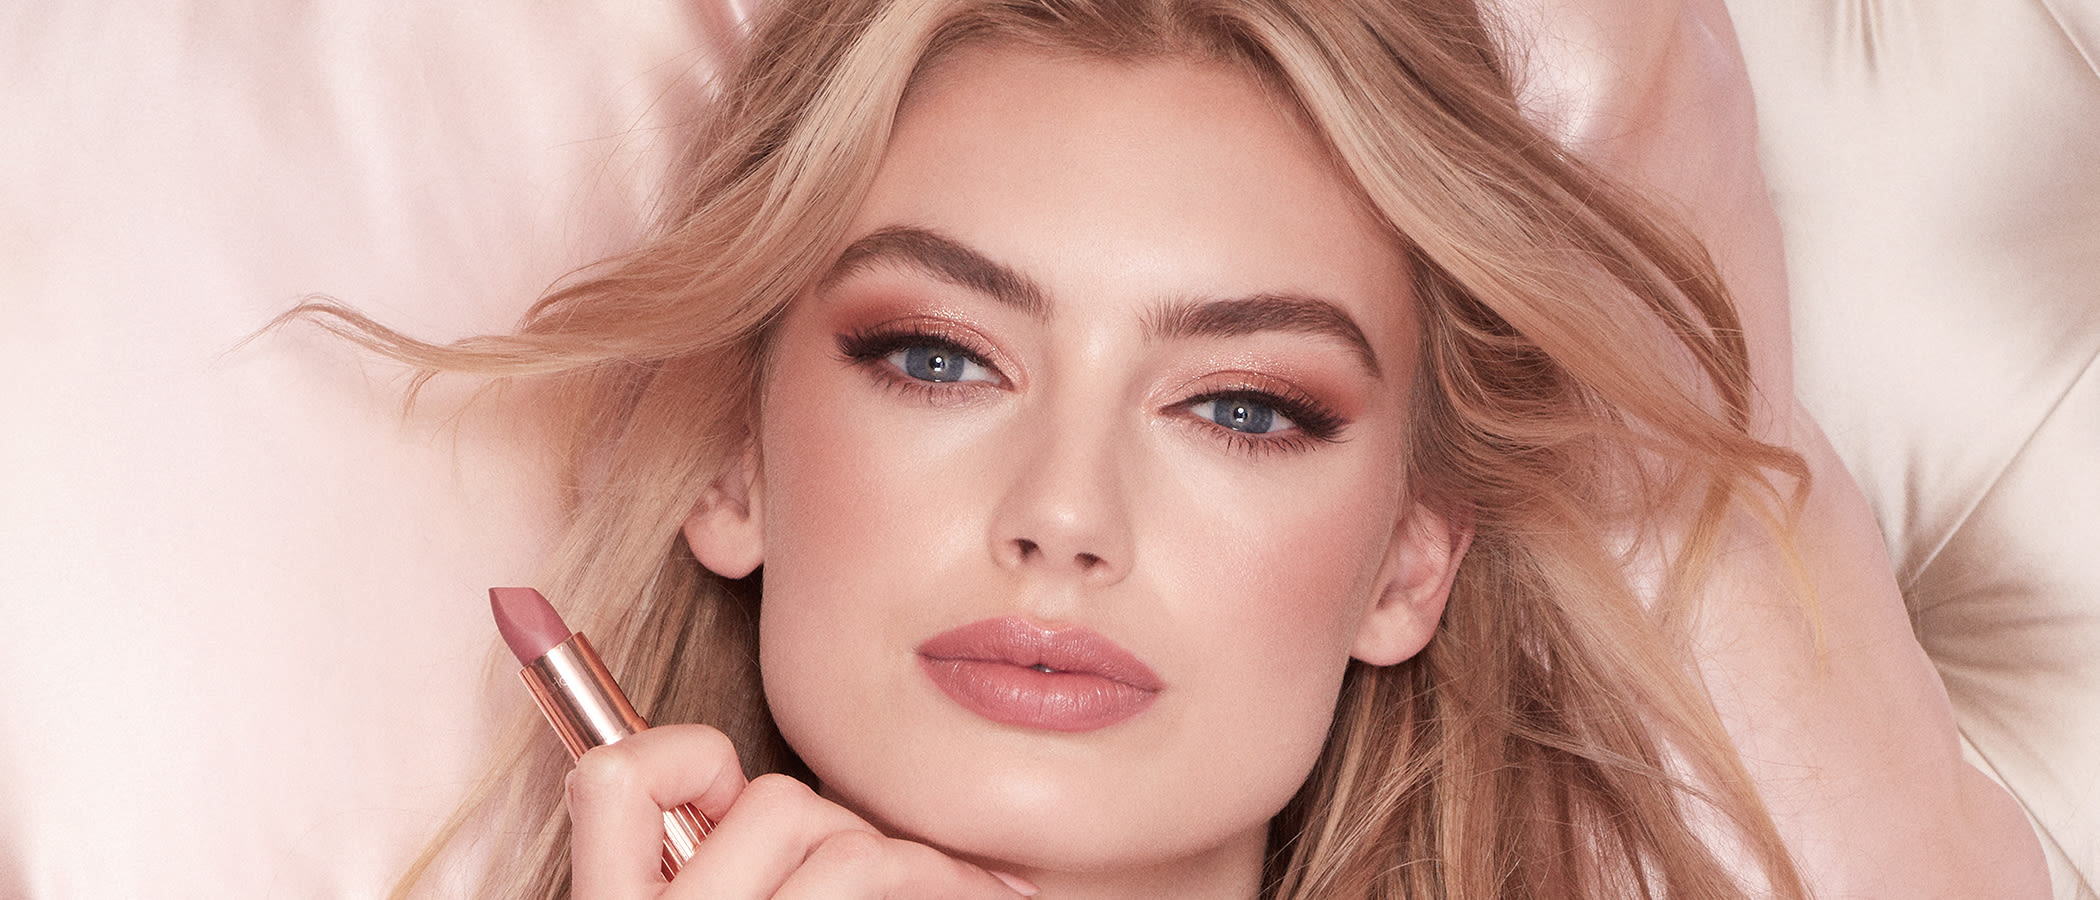 Discover Valentine's Day makeup tutorials to feel gorgeous, including pink eyeshadow tutorials, date night makeup and pretty pink lipsticks.